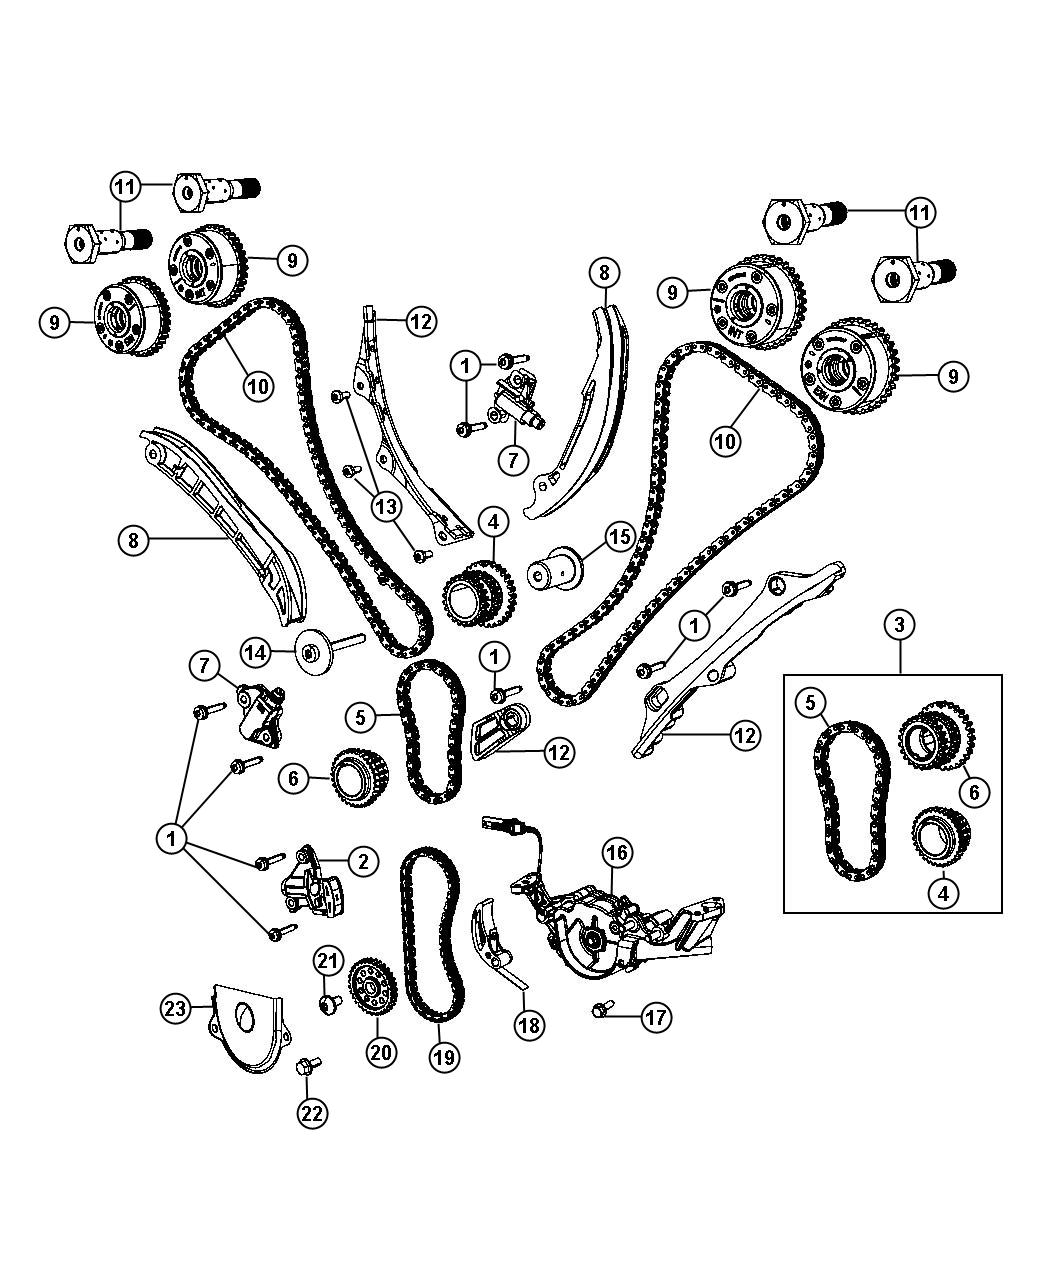 Pontiac vibe thermostat location as well 97 chevy engine diagram 3 1 liter timing marks likewise